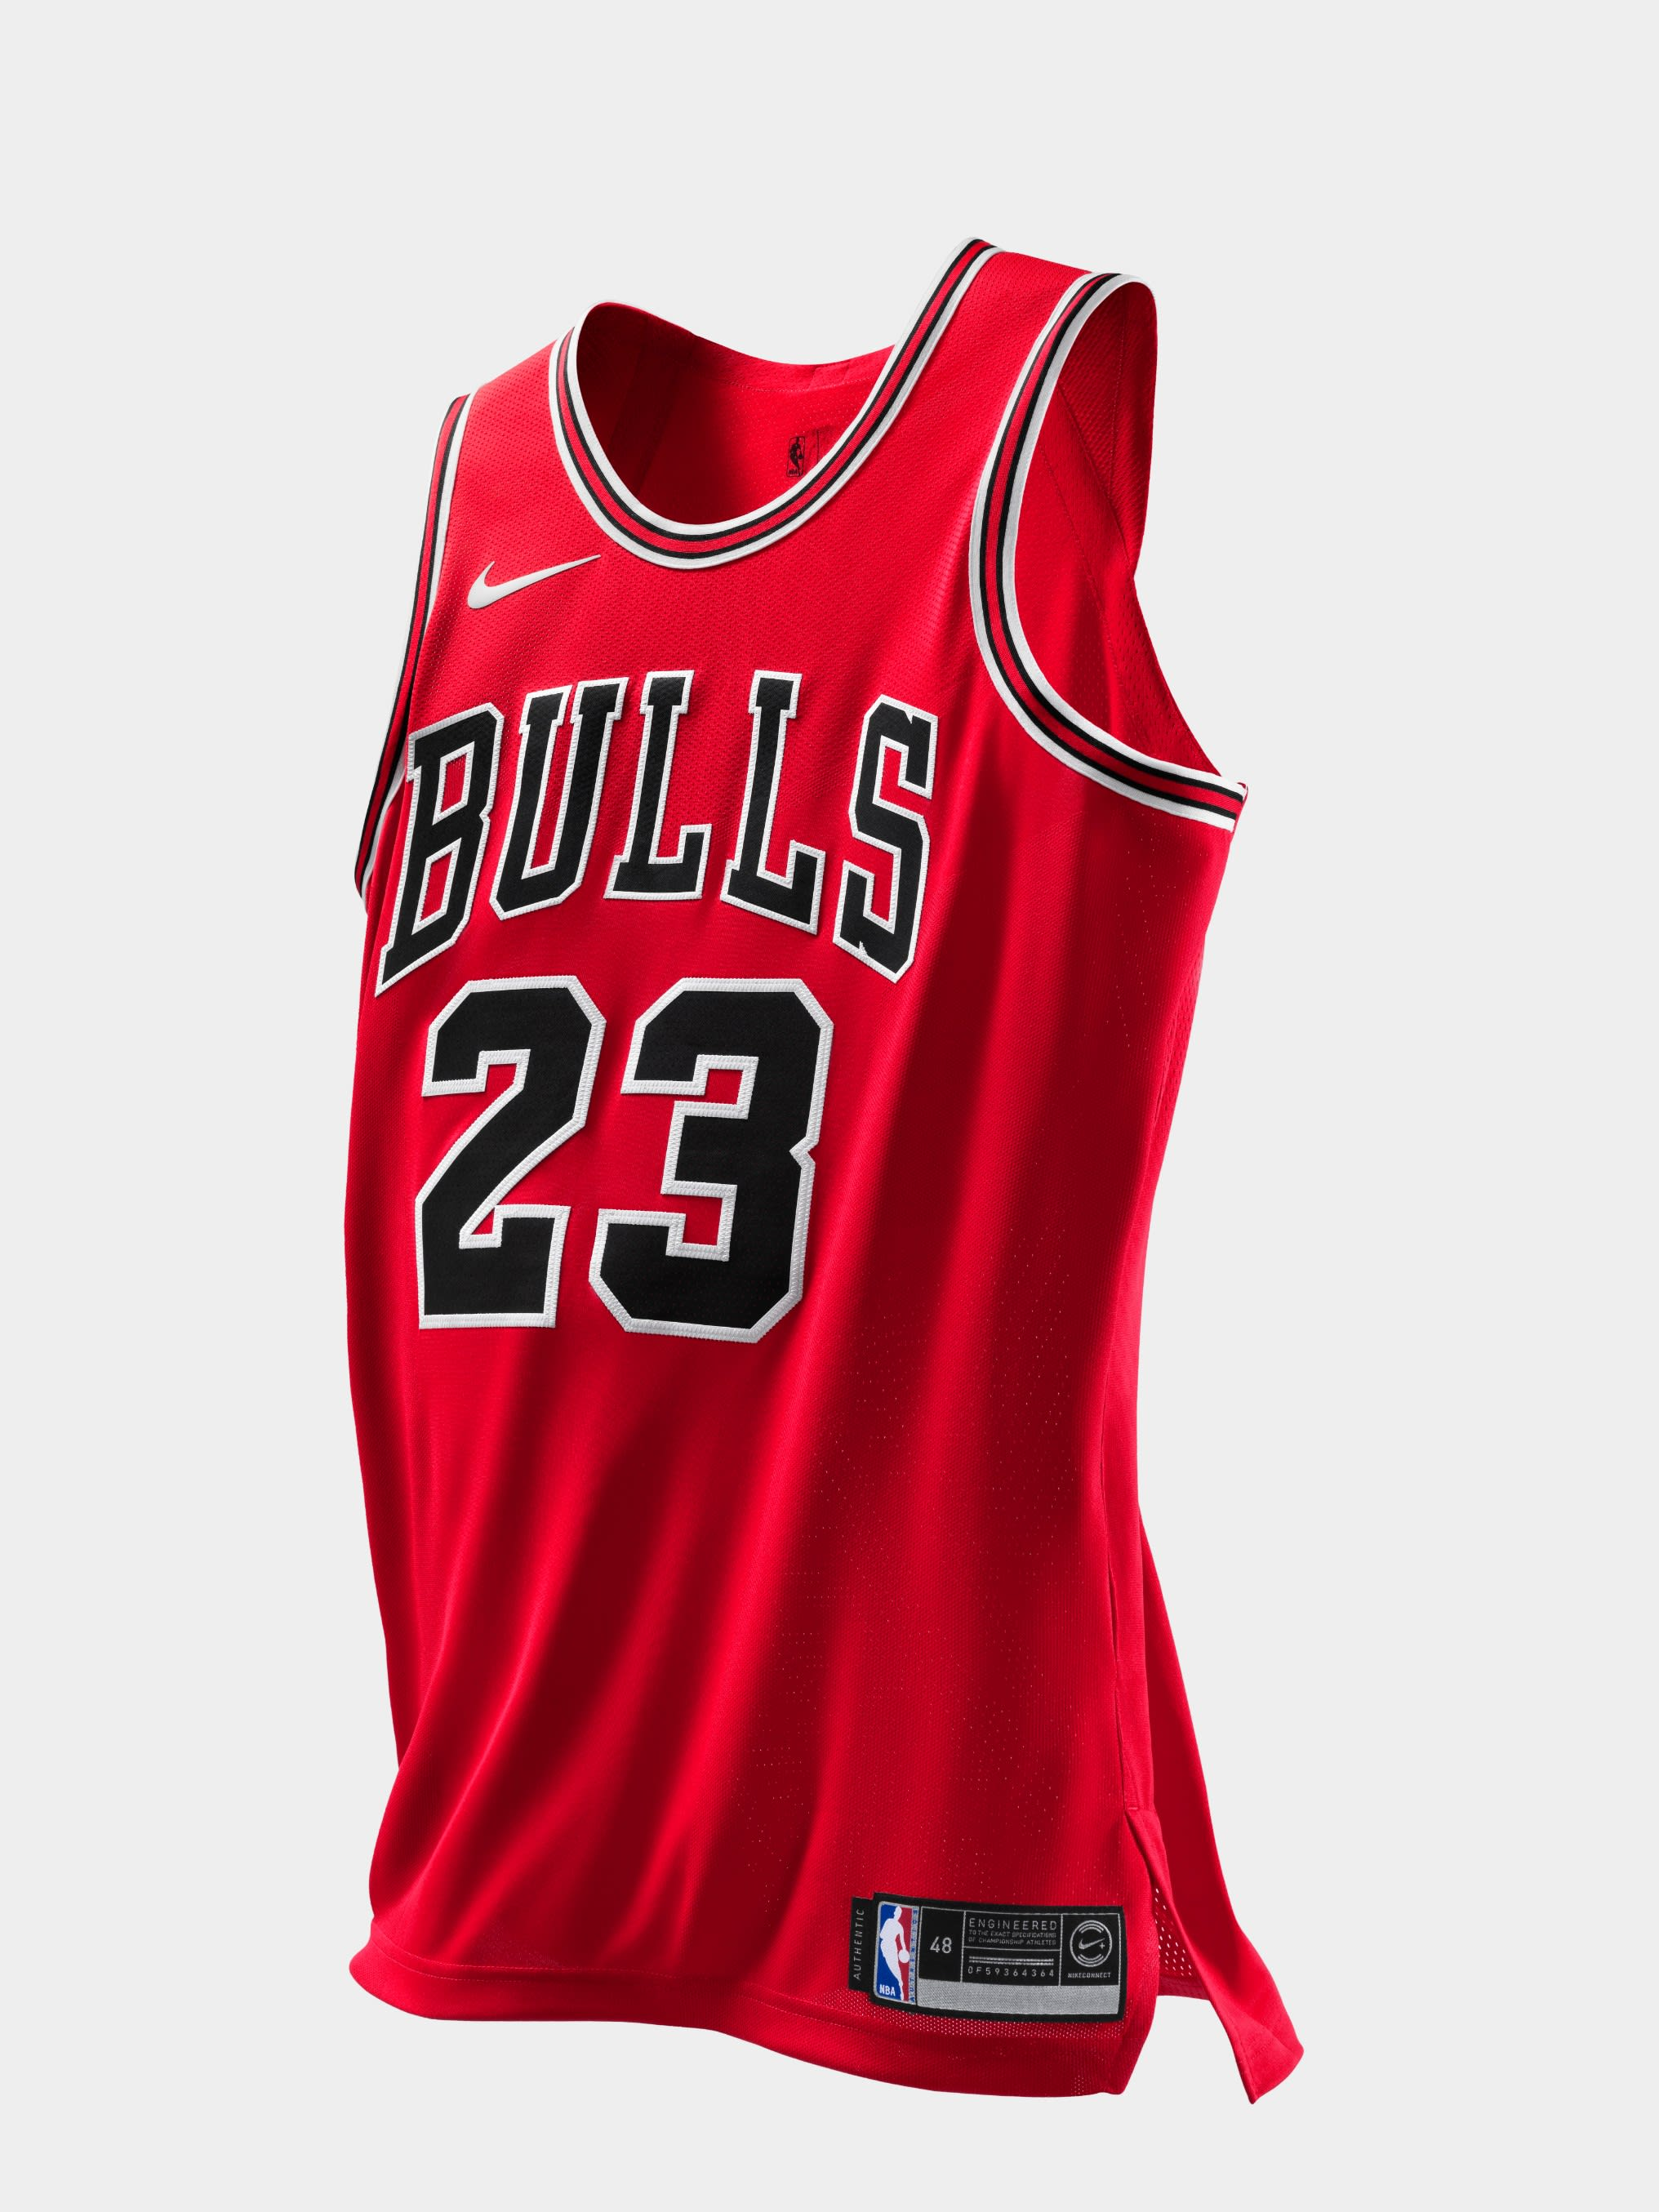 Michael Jordan Chicago Bulls Last Shot Jersey (Authentic)